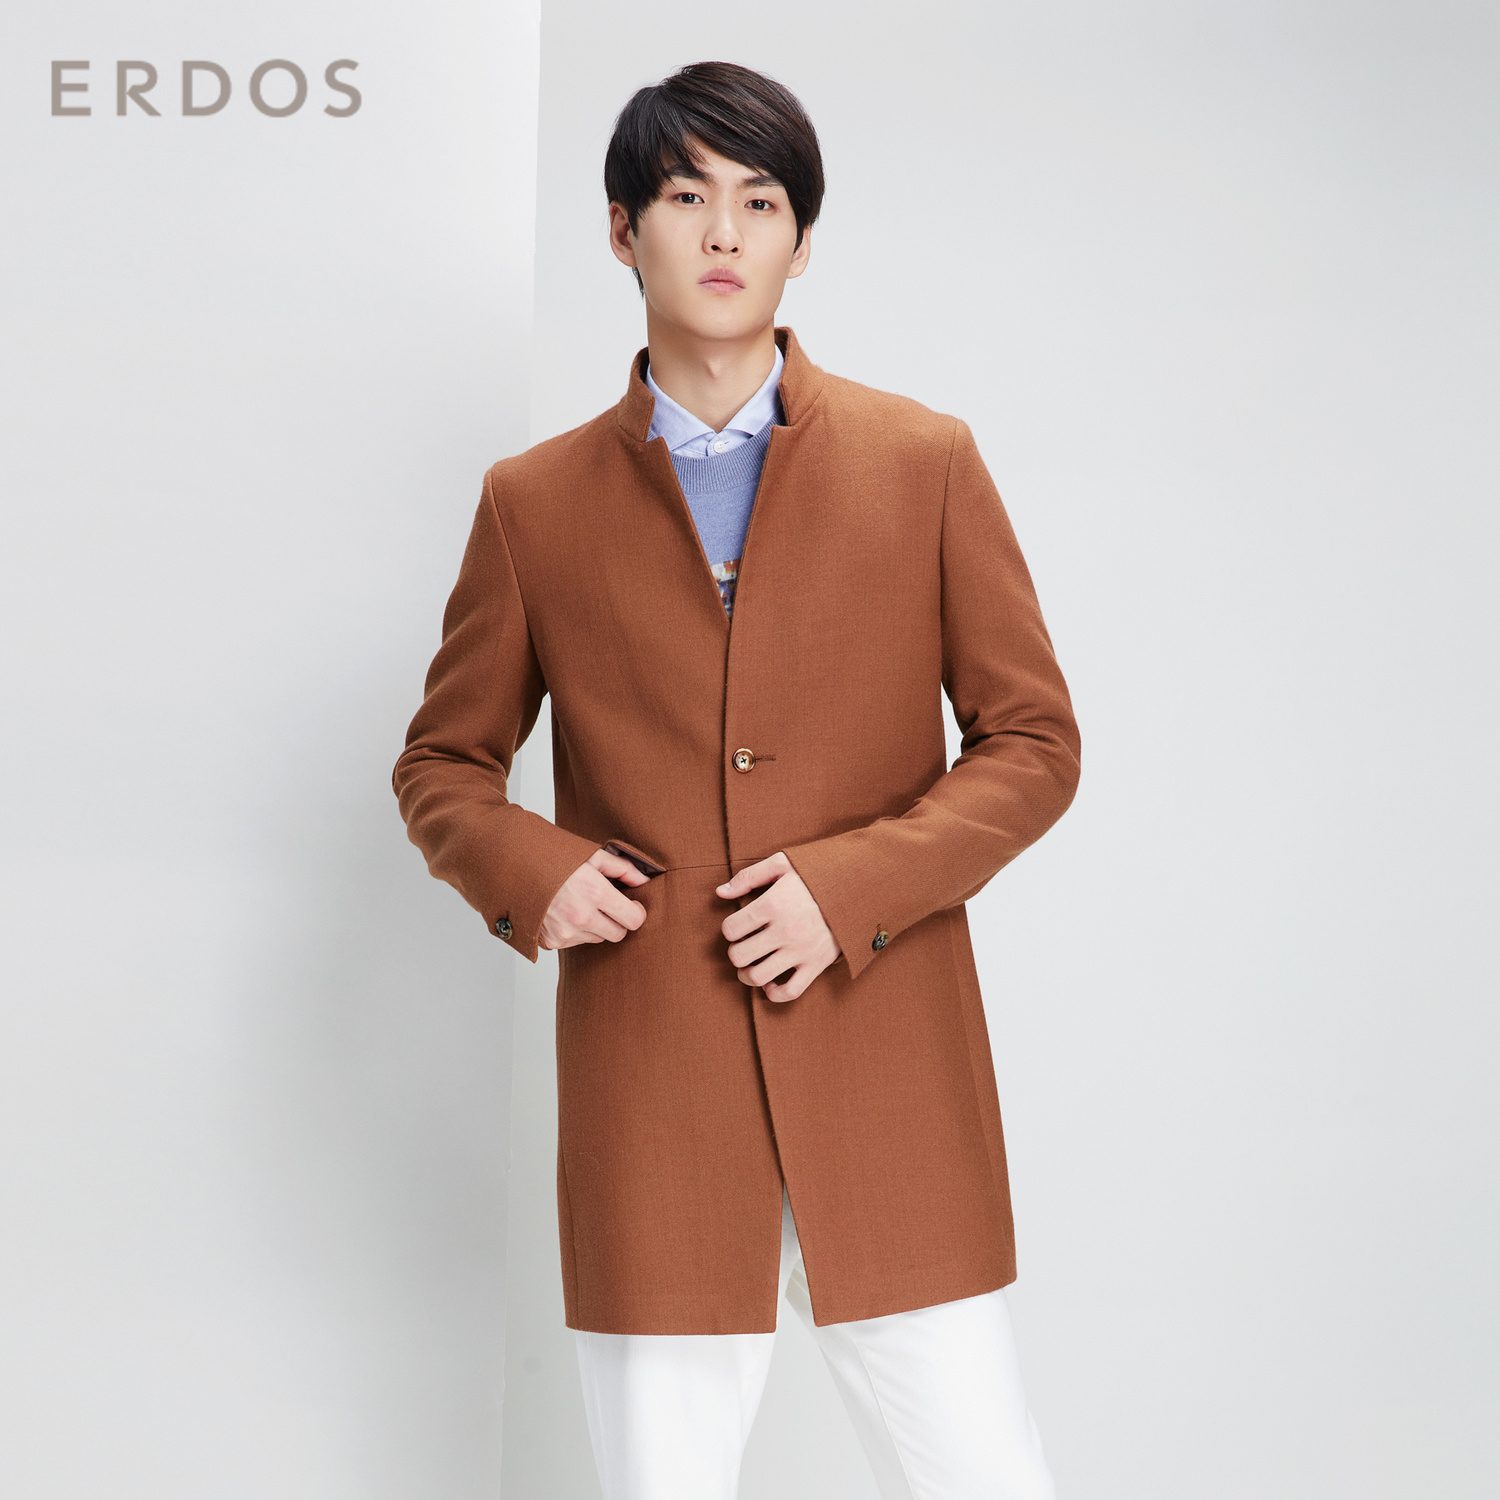 Erdos autumn and winter new business stand collar light cashmere blend mens coat comfortable and warm e195k1005